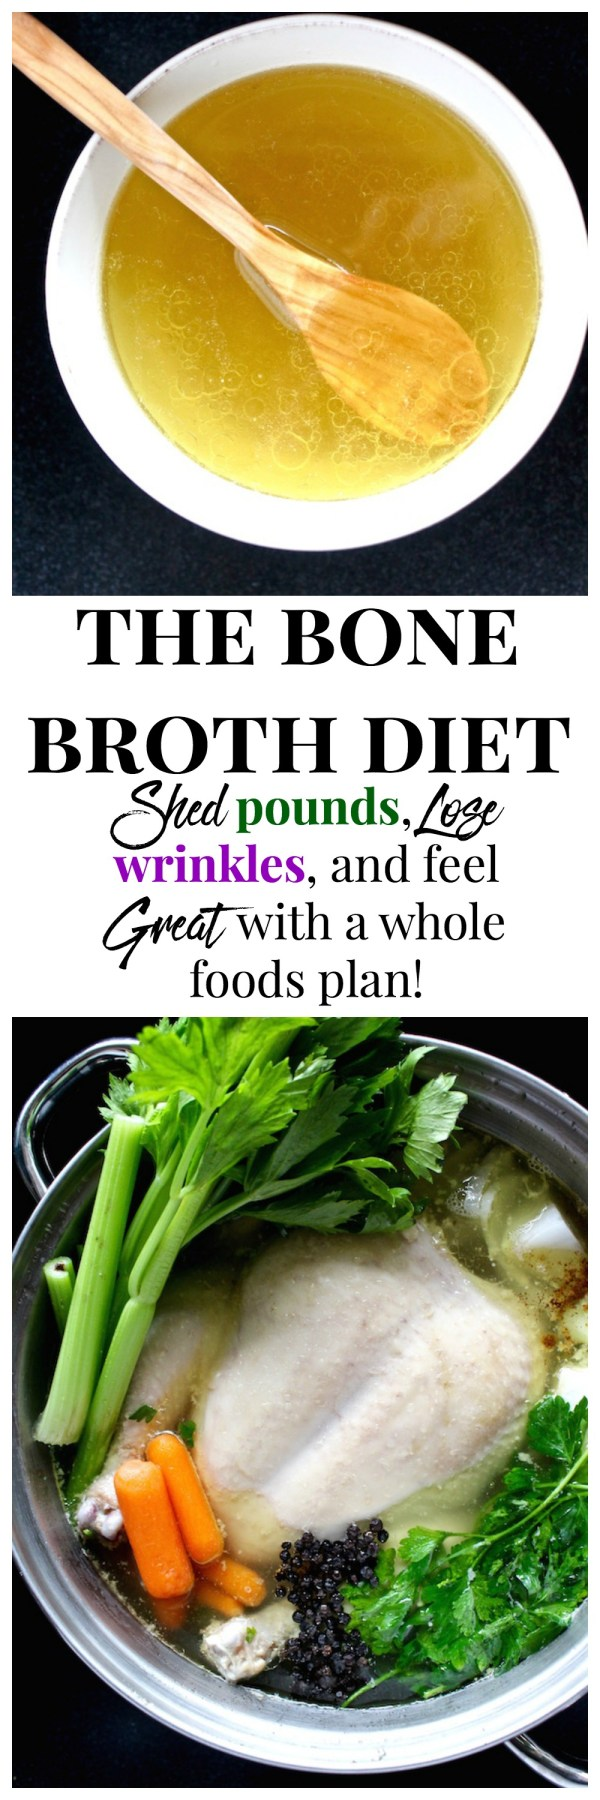 the bone broth diet pinterest